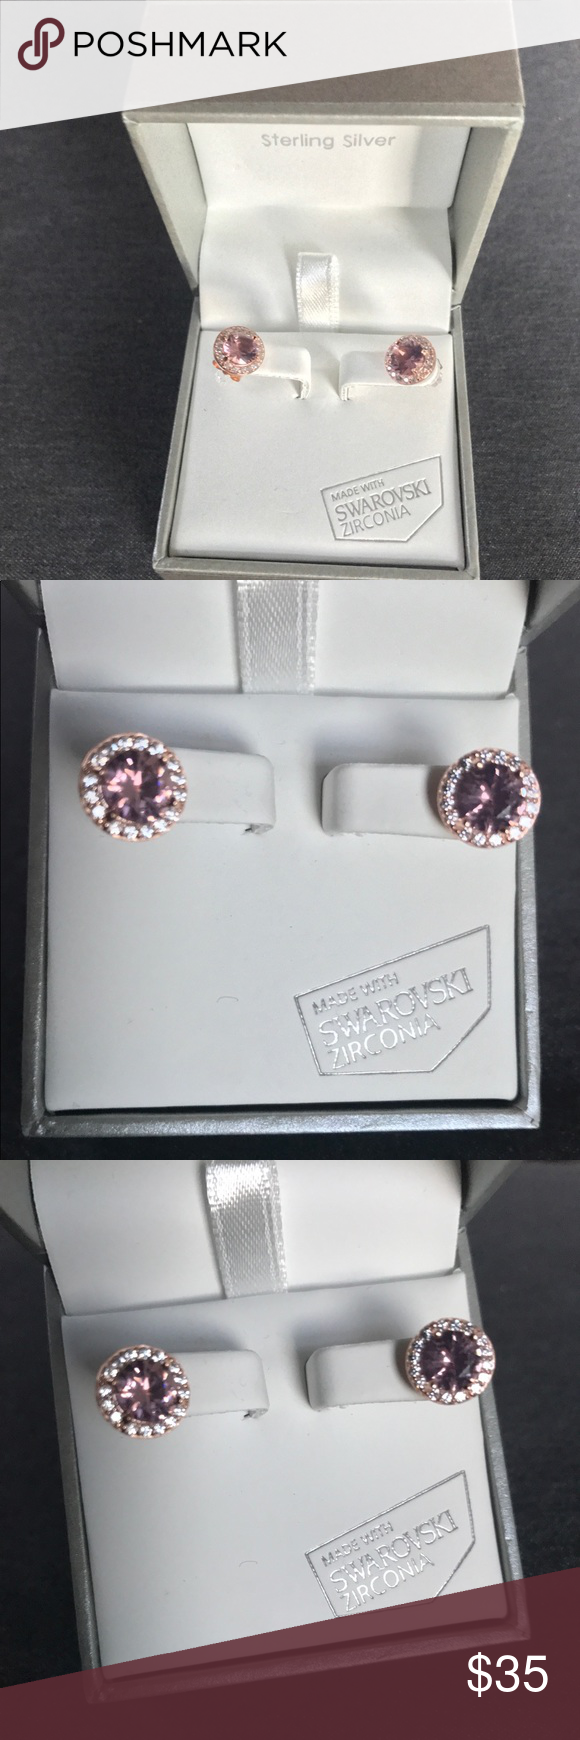 New Sterling Silver With Swarovski Zirconia Charming Earrings Plated Rose Gold Tone Stones Kiera Couture